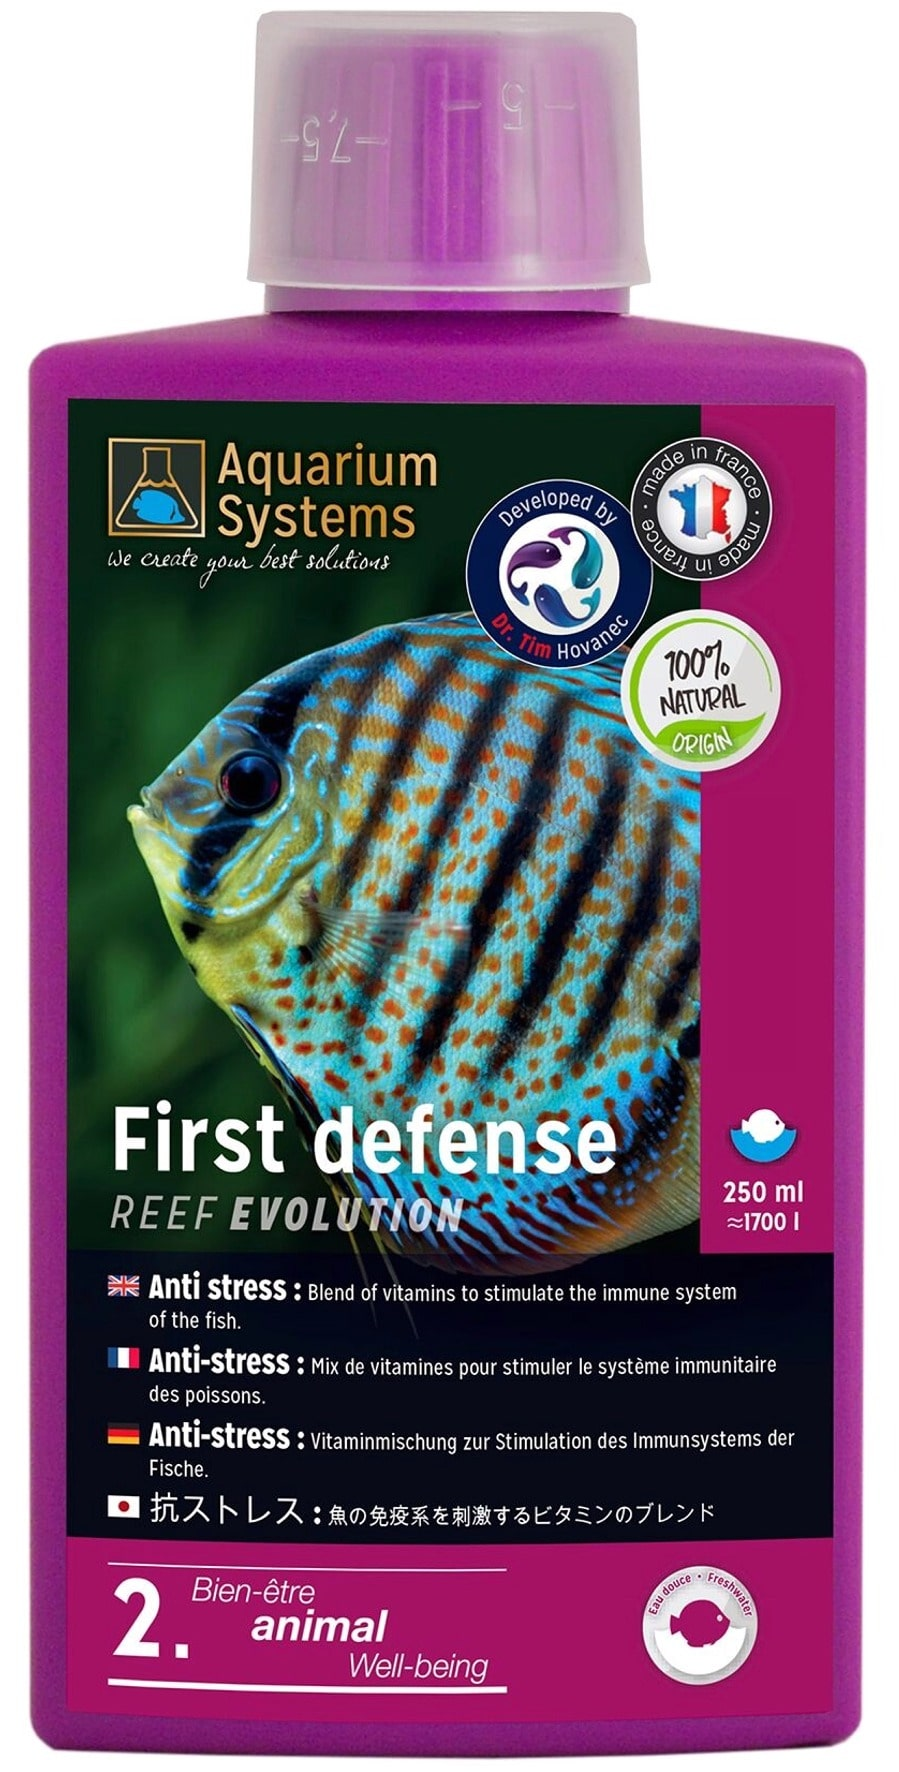 AQUARIUM SYSTEMS First Defense Eau Douce 250 ml anti-stress à base de vitamines stimulant le système immunitaire des poissons